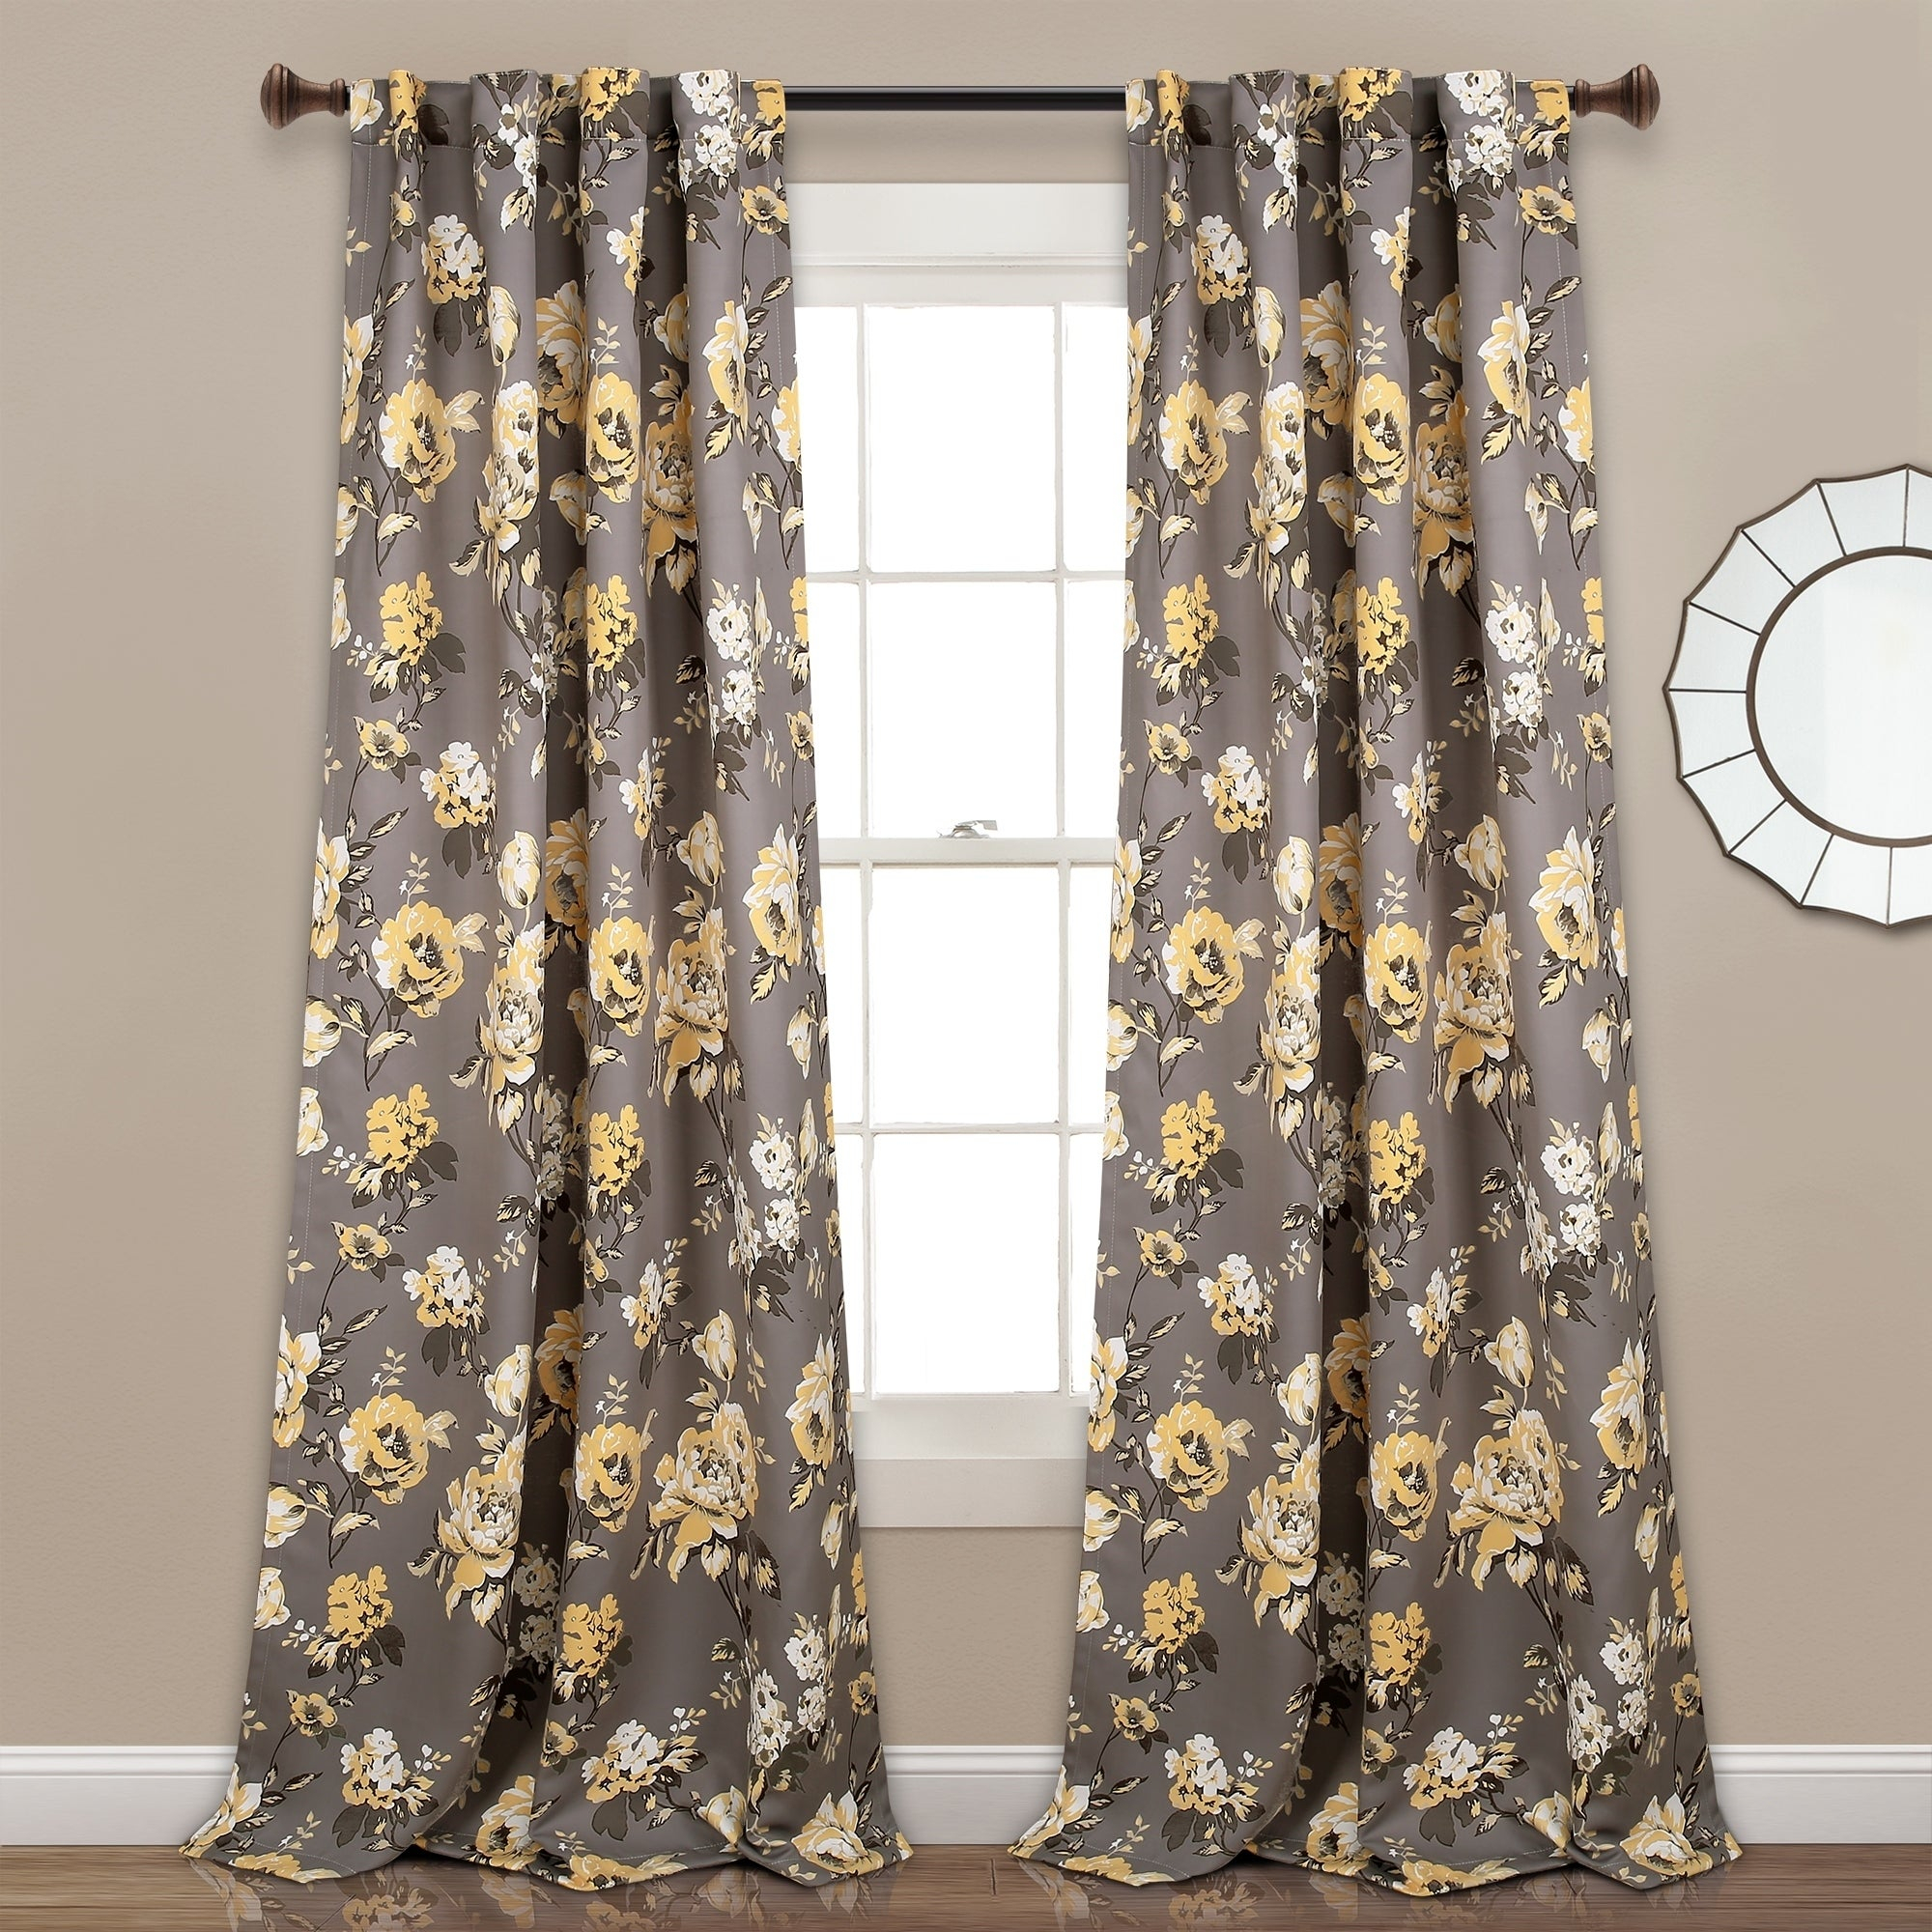 Lush Decor Tania Floral Room Darkening Window Curtain Panel Pair inside Floral Pattern Room Darkening Window Curtain Panel Pairs (Image 12 of 20)